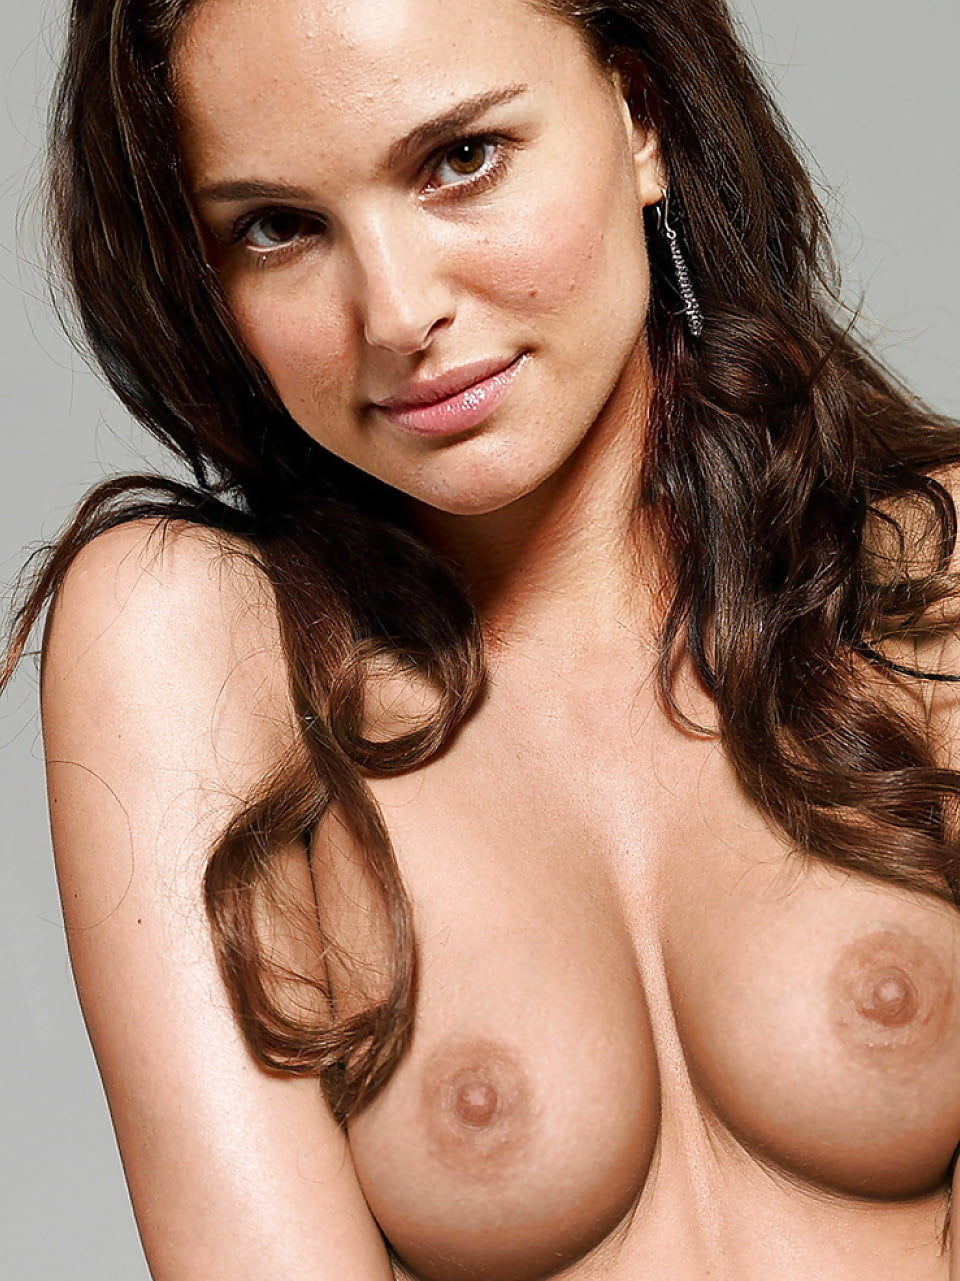 Images Of Famous Women Celebrities Naked